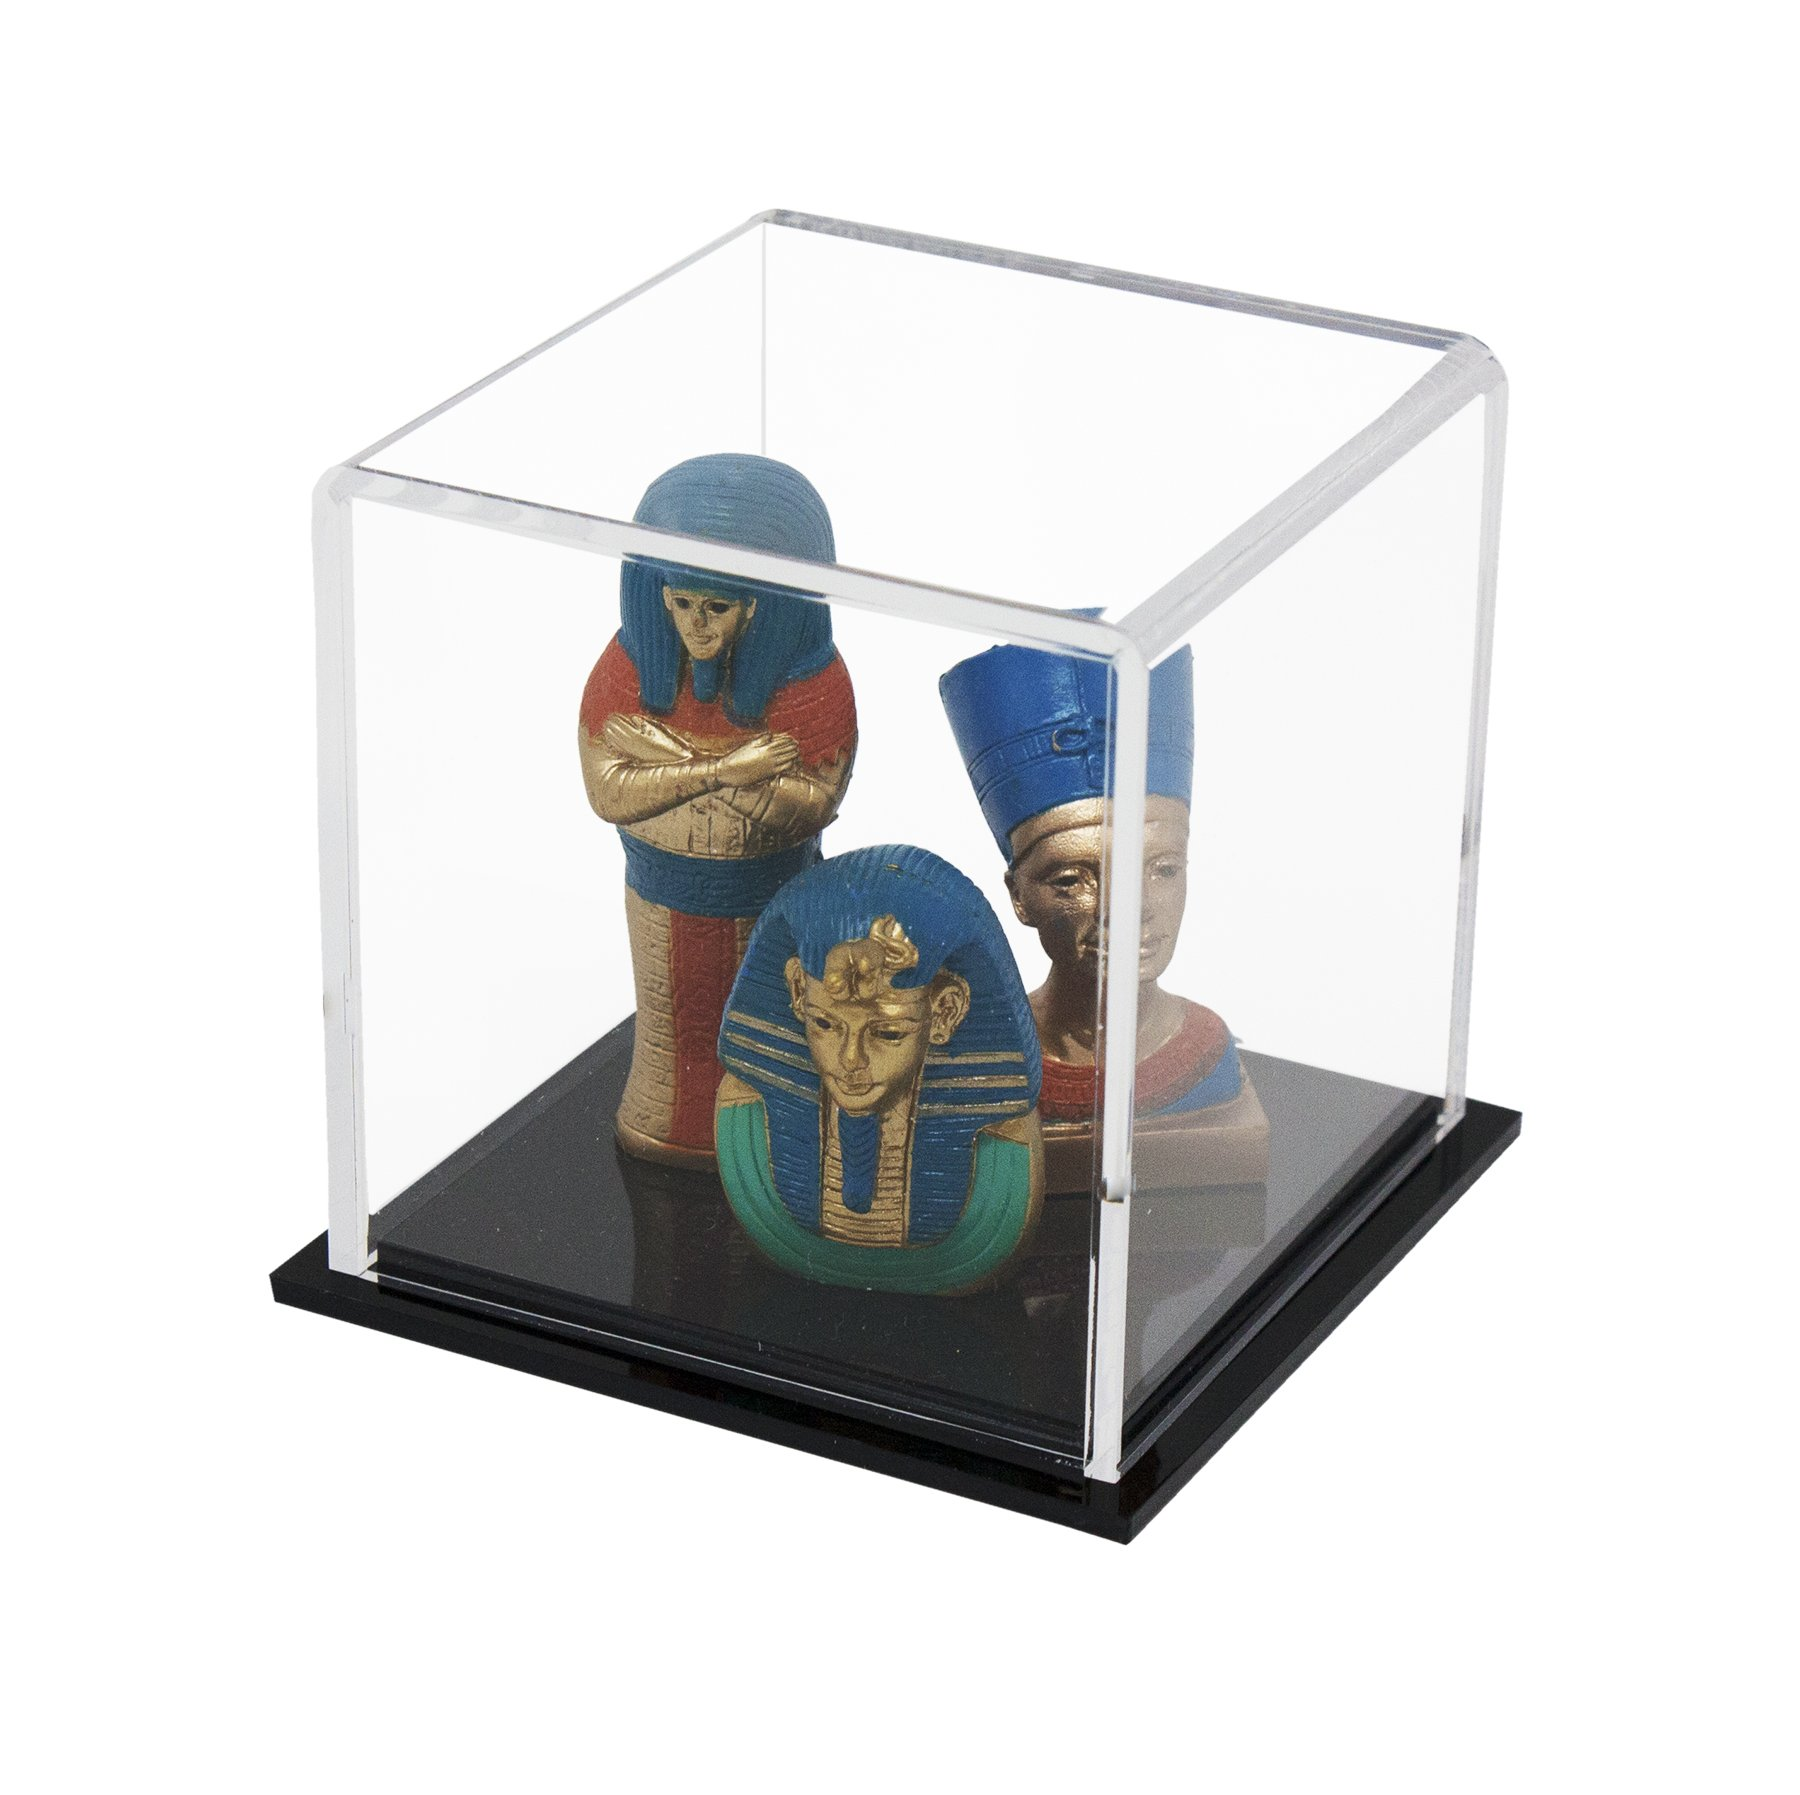 Versatile Acrylic Display Case, Cube, Dust Cover and Riser 3'' x 3'' x 3'' (A046-DS)